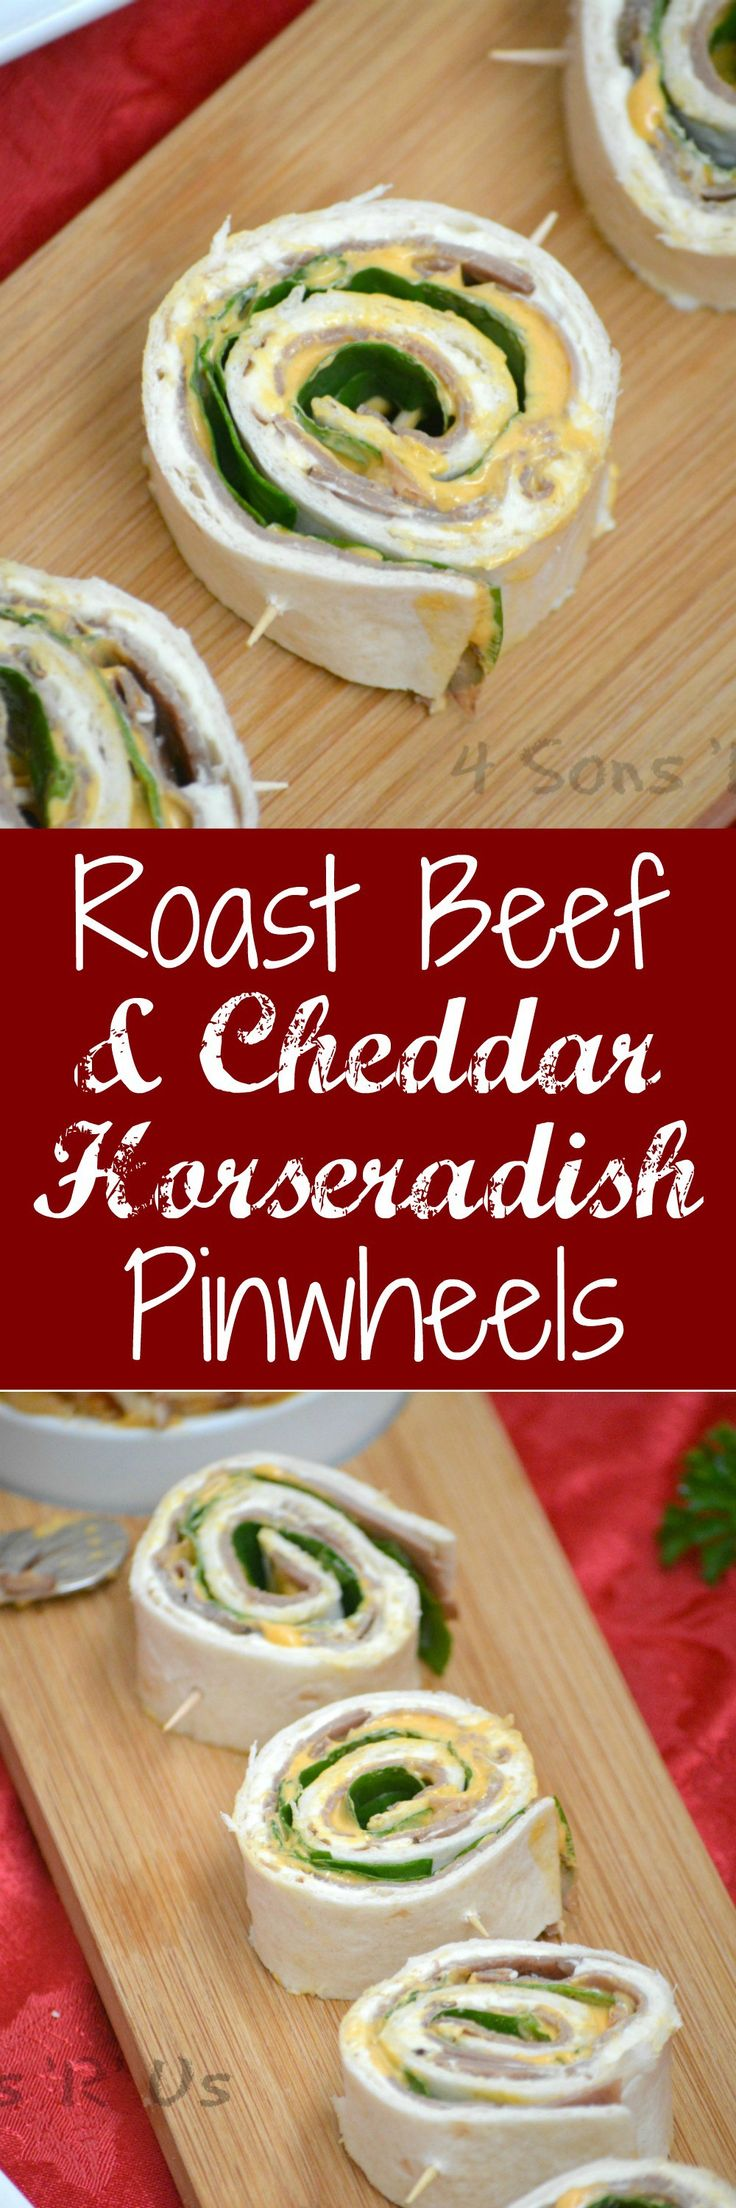 An easy appetizer that's perfect for stress free entertaining during the busy holiday season-- these Roast Beef & Cheddar Horseradish Pinwheels are a recipe you'll want to have on hand. #InspireWithCheese #ad